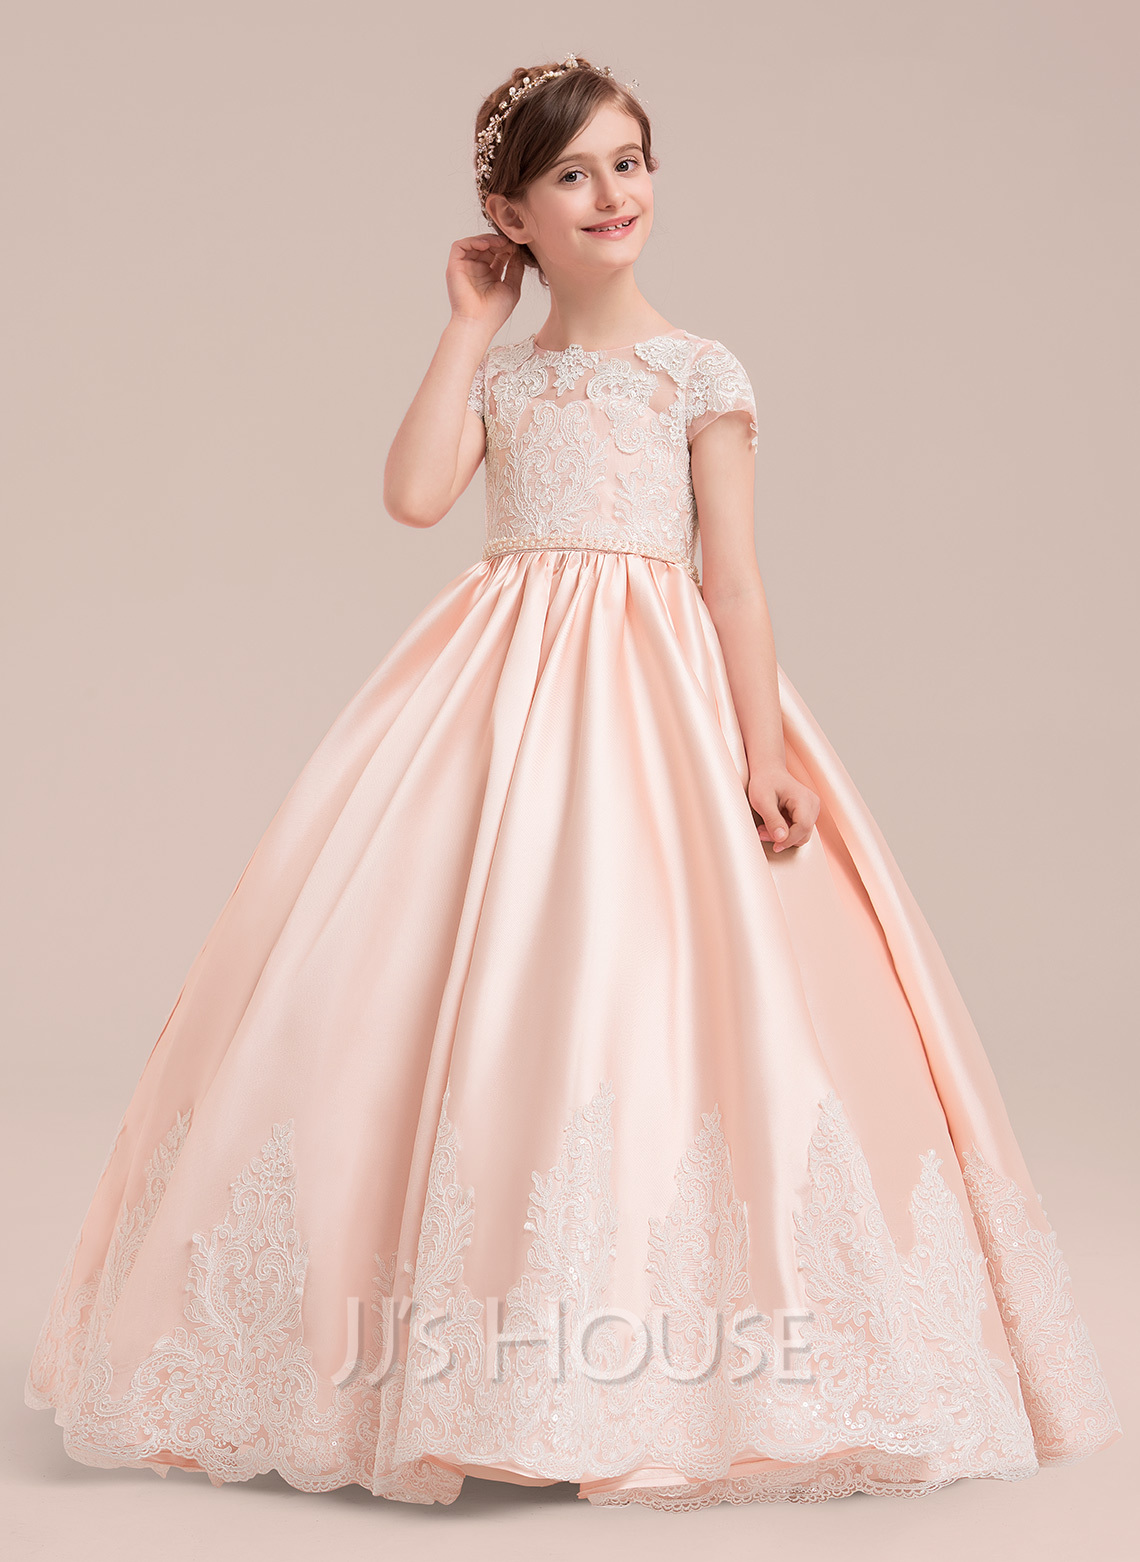 d0b749a7b Ball Gown Floor-length Flower Girl Dress - Satin/Tulle/Lace Short Sleeves.  Loading zoom